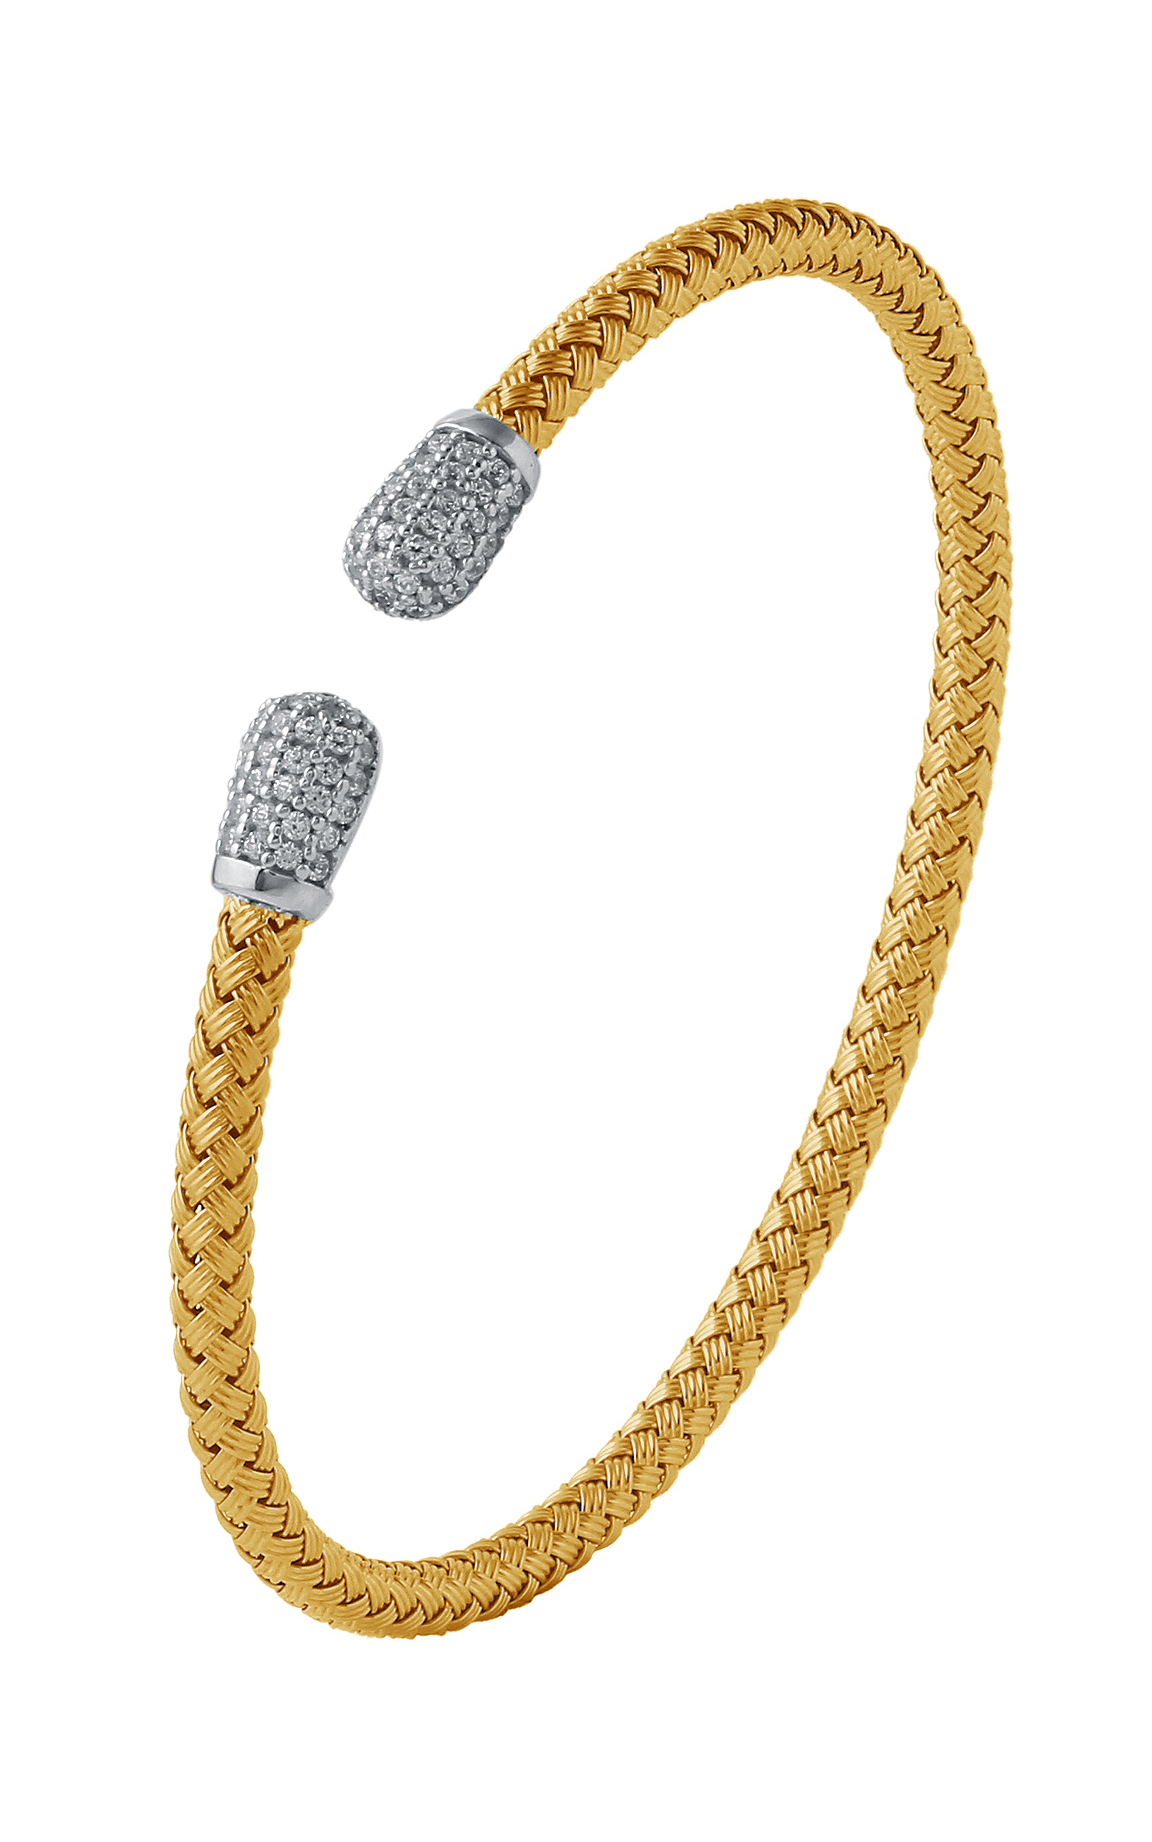 Charles Garnier Bracelets Bracelet Paolo Collection MLC8057YWZ product image